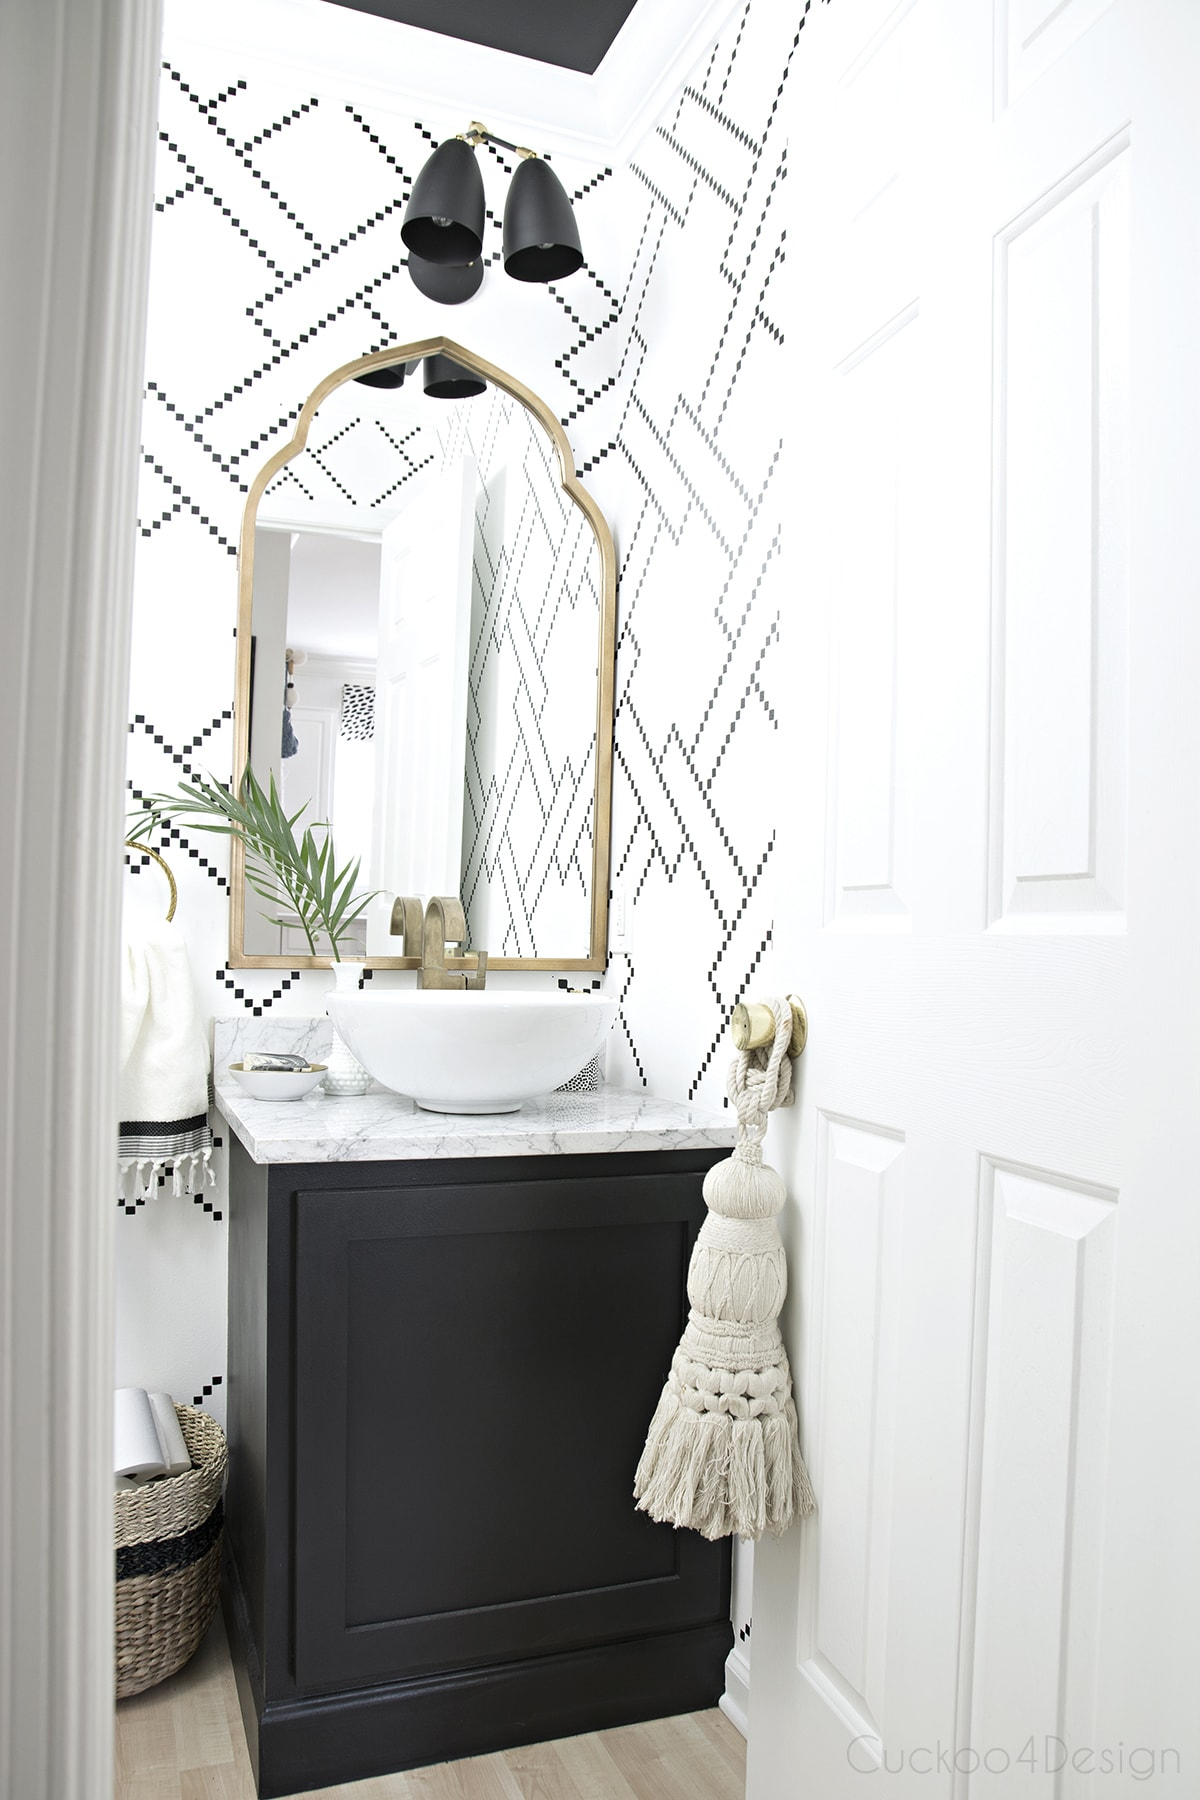 black, white and gold powder room with sharpie stenciled walls